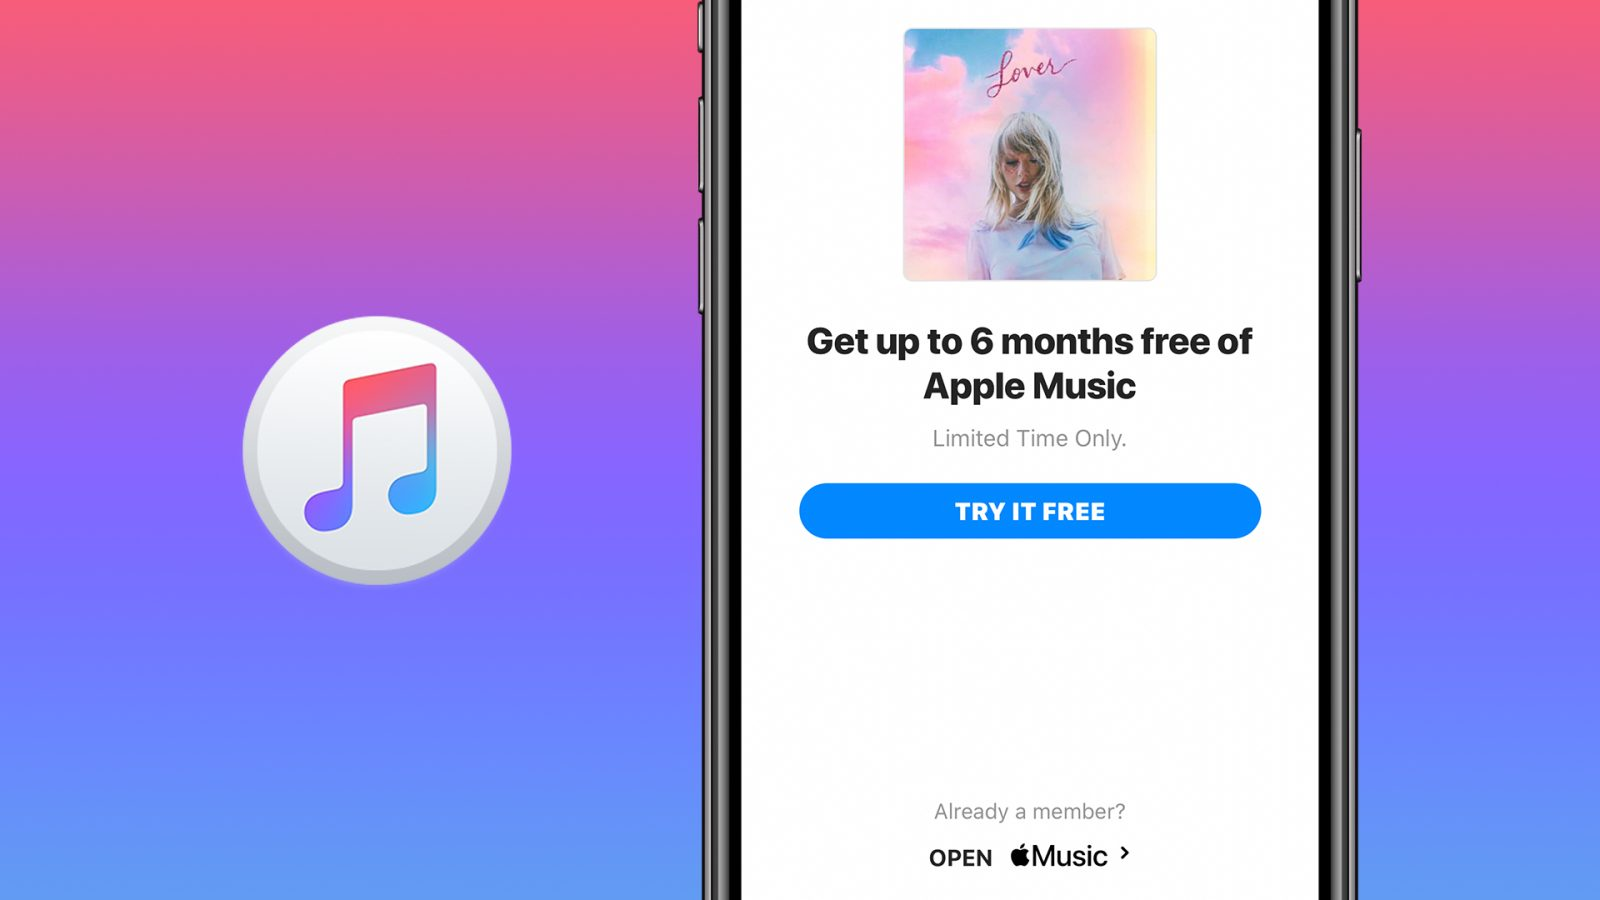 Apple music download cost